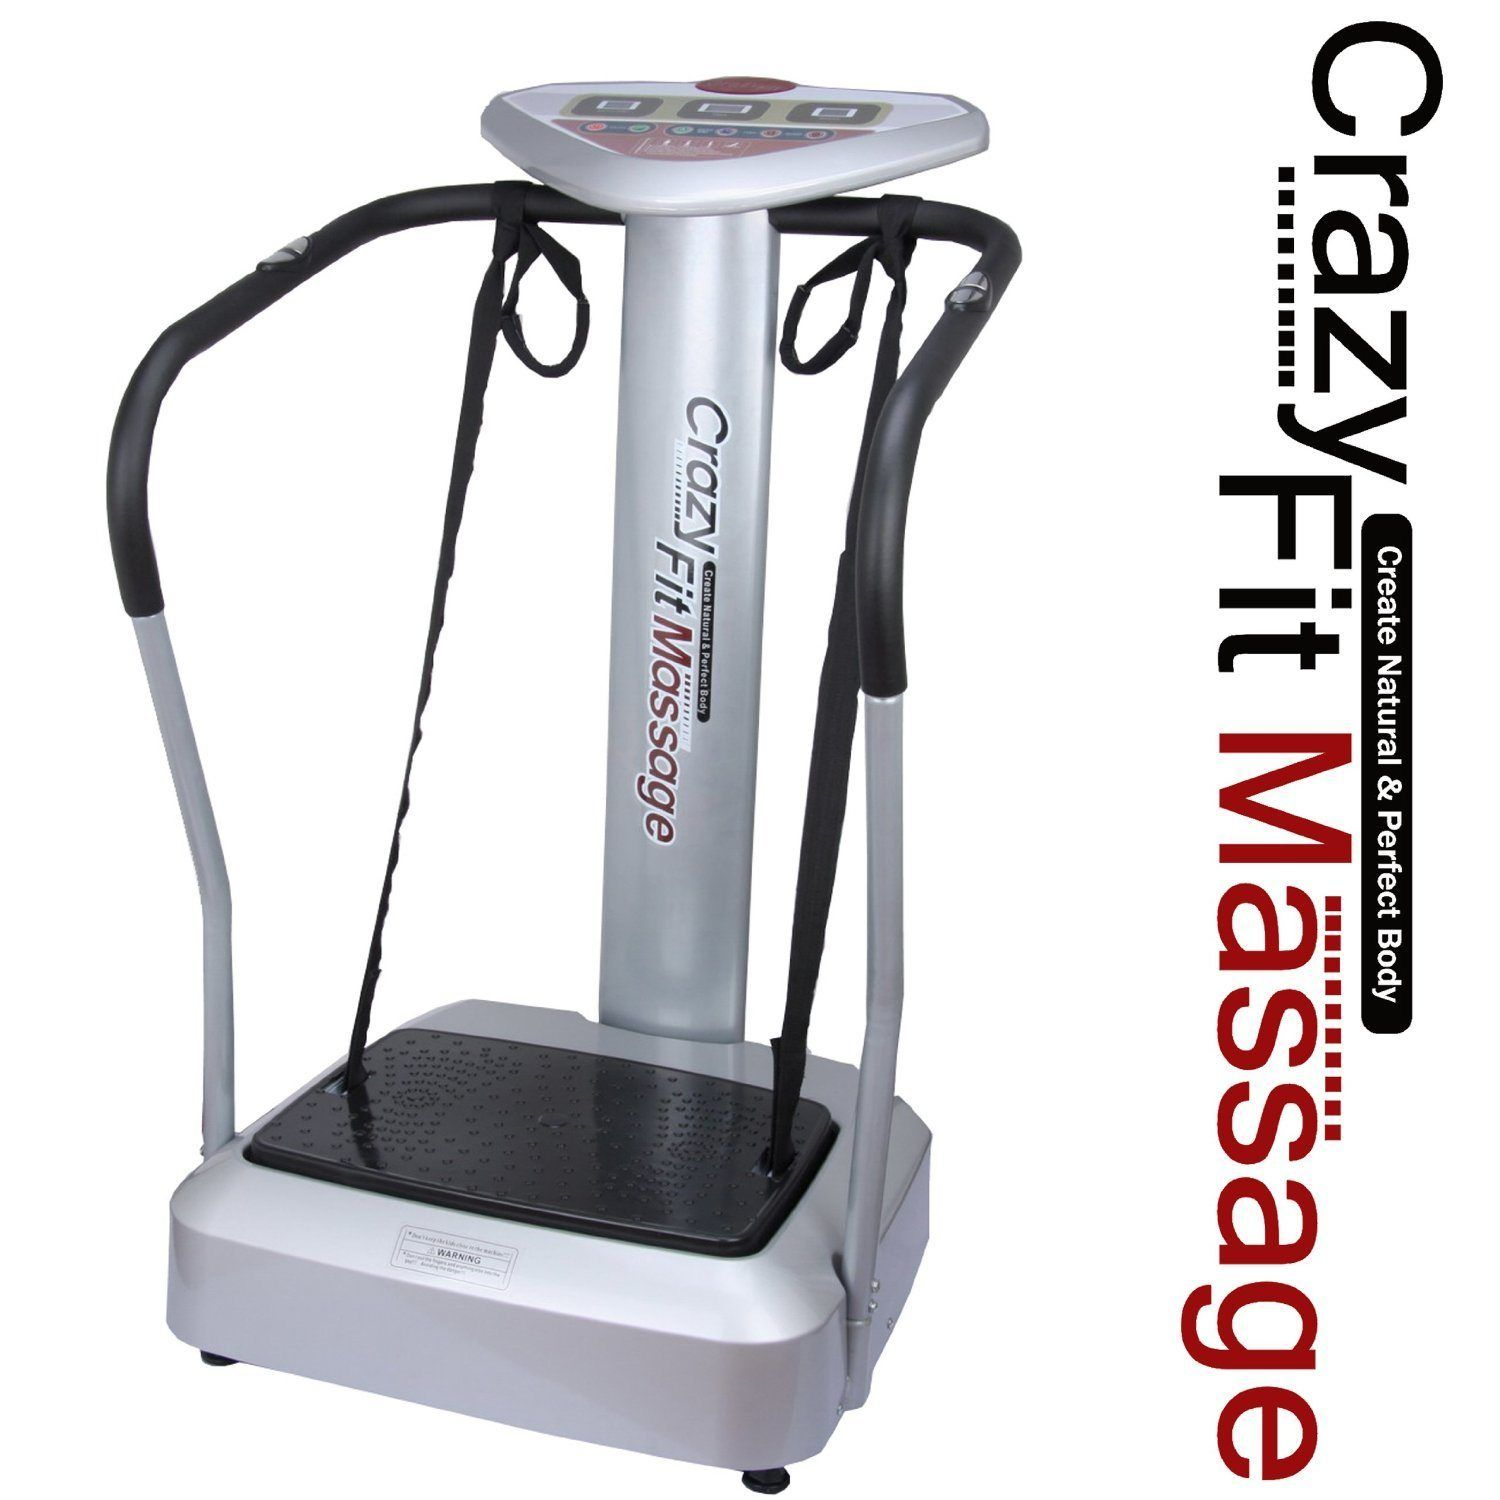 Benefits of working out using a vibration plate machine